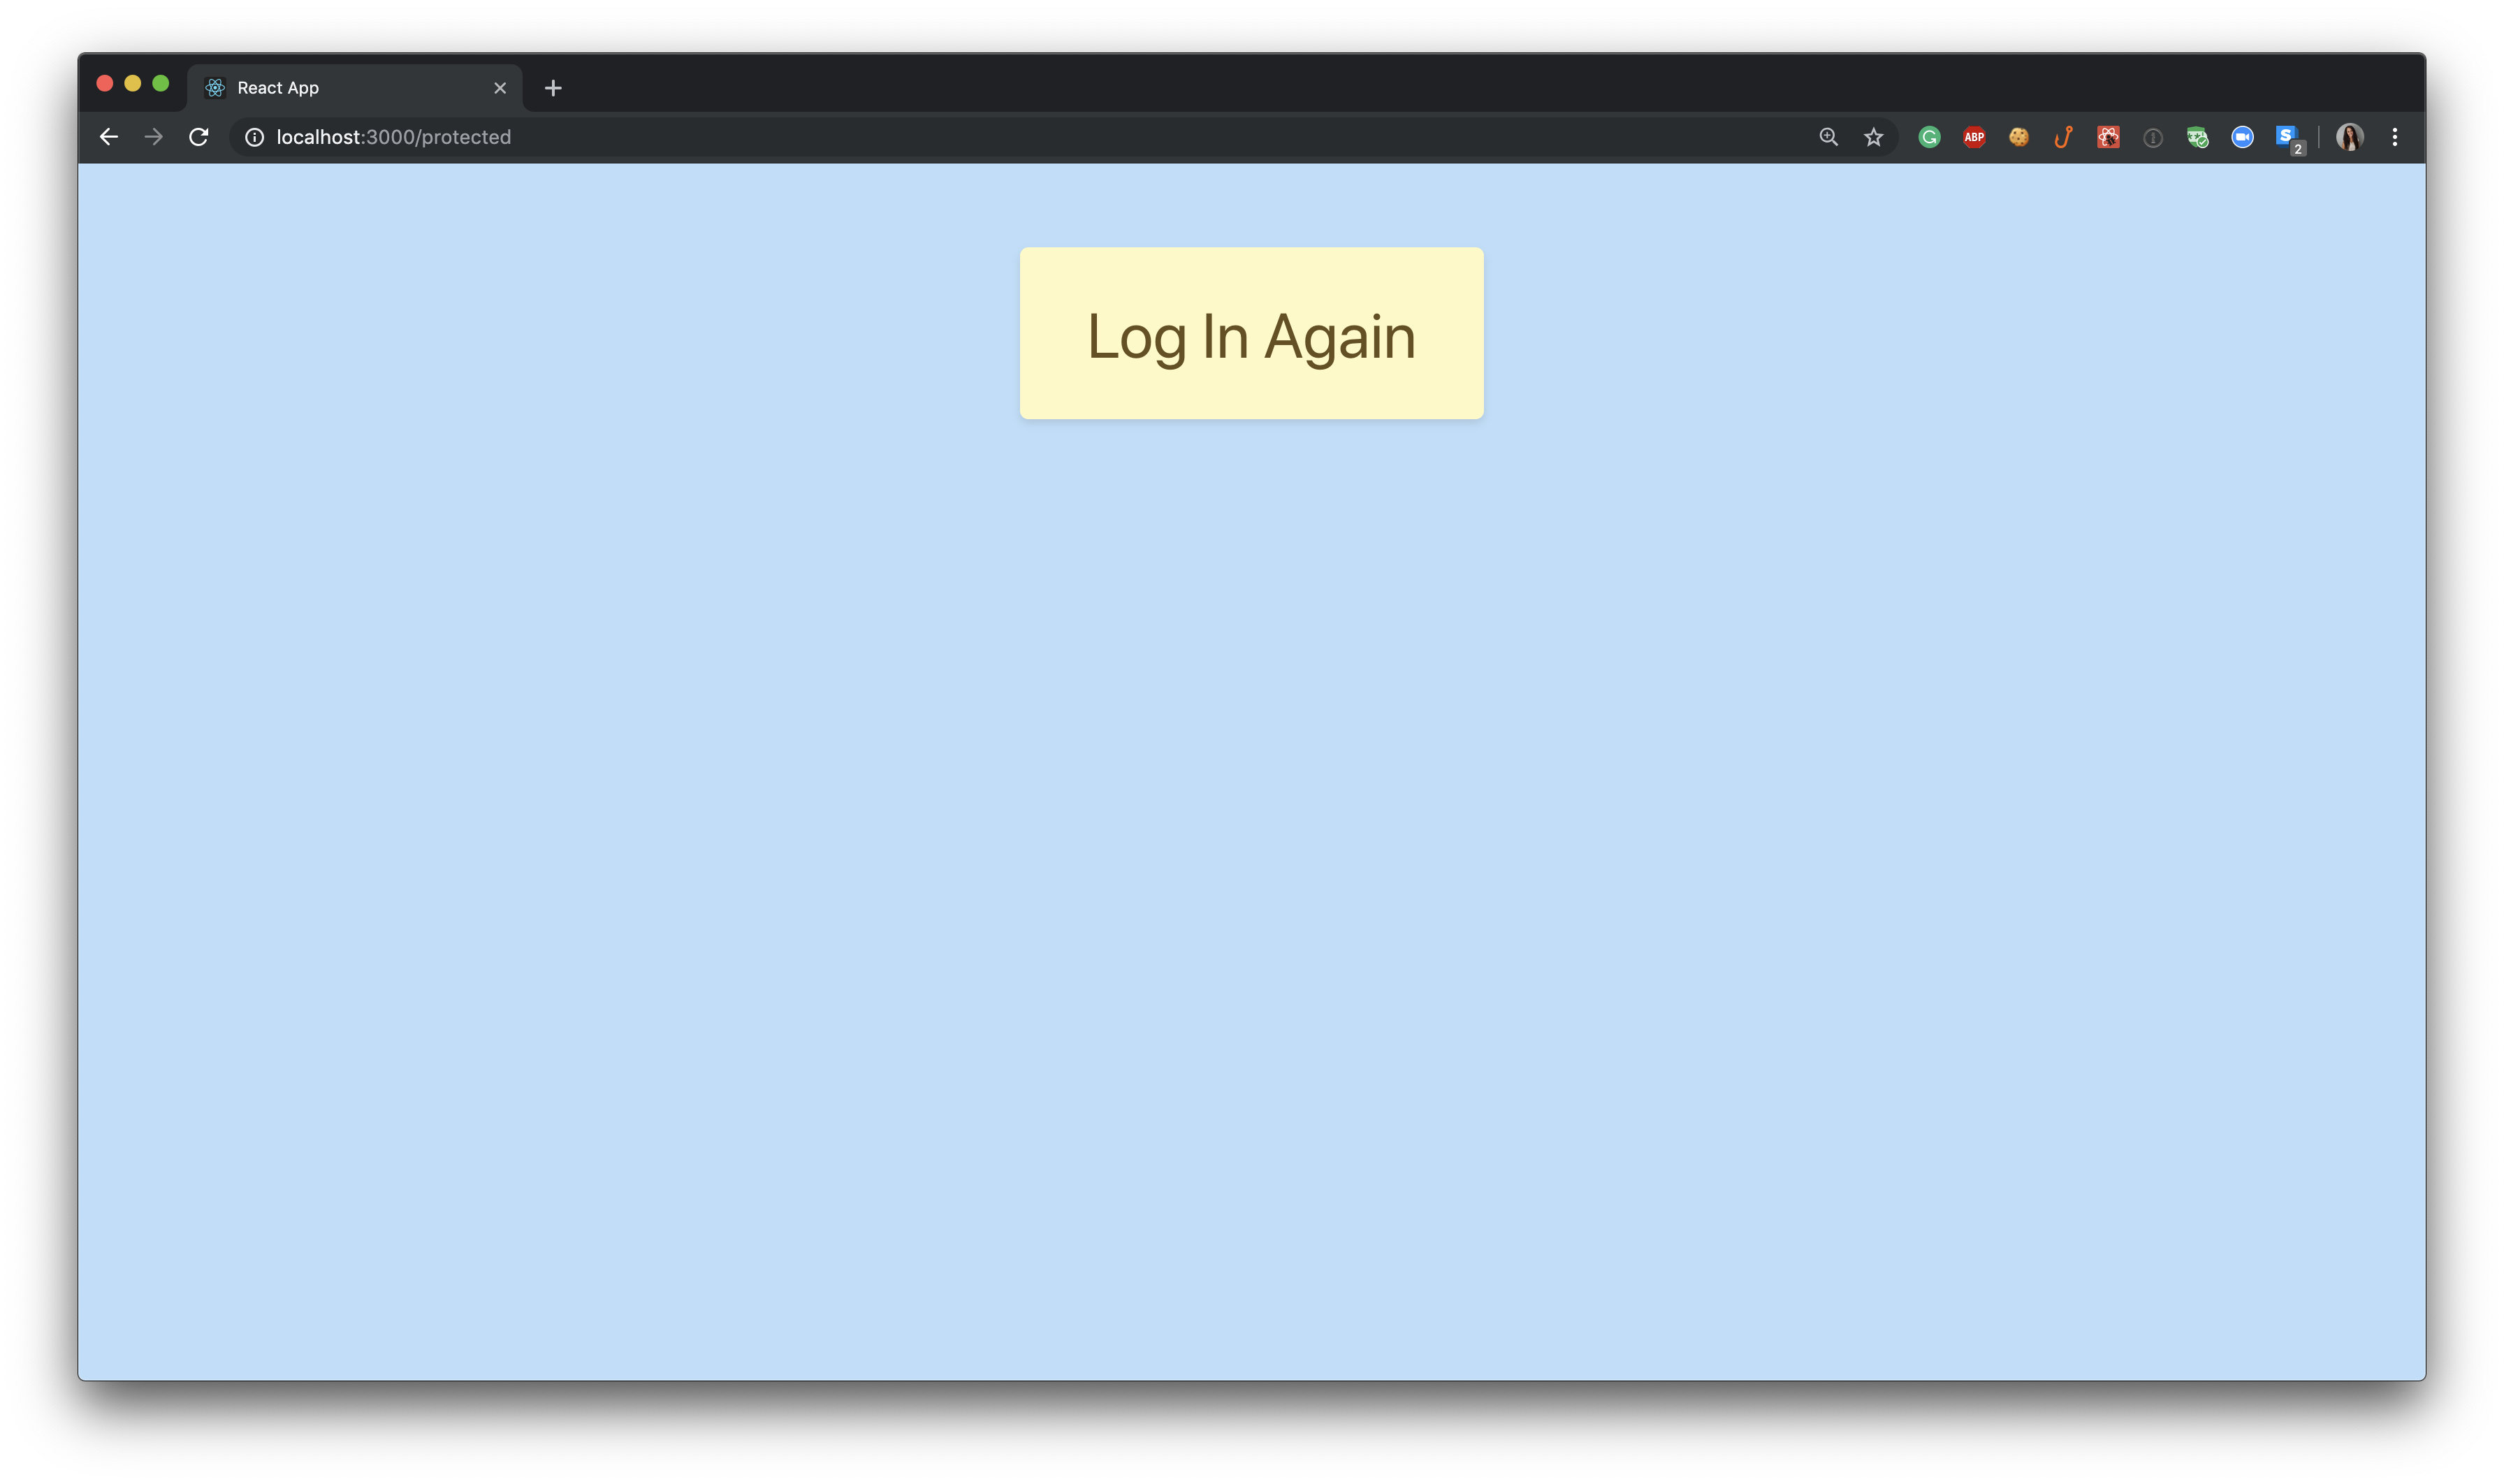 Application running locally - Auth Timeout Log In Again view